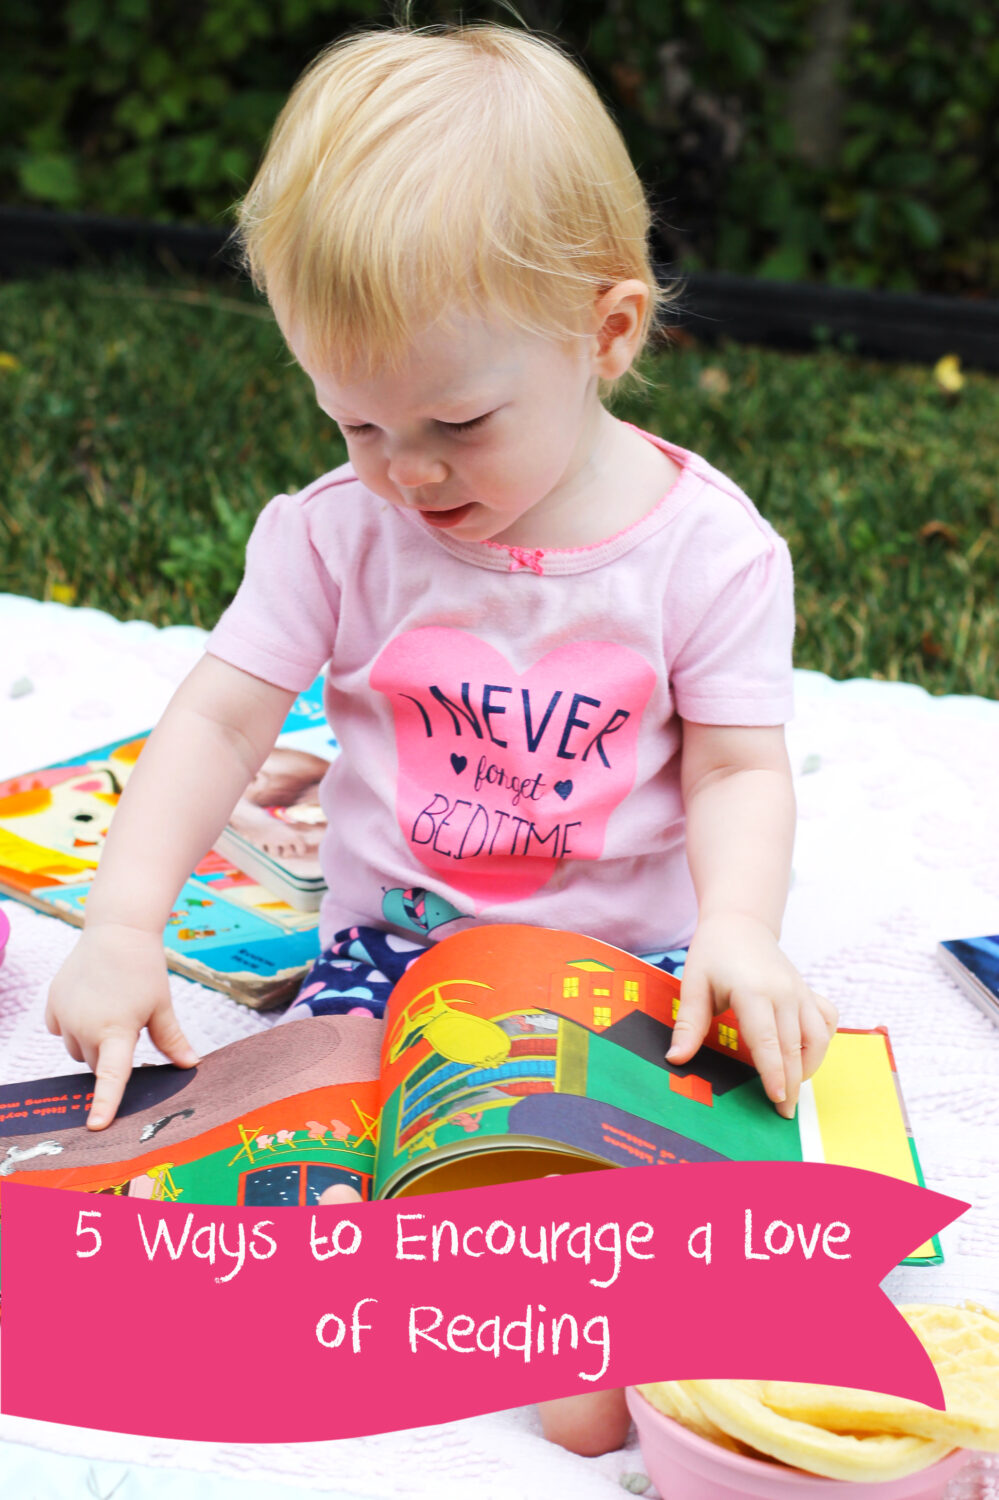 I love these tips for 5 ways to encourage reading with children of all ages!  These simple tips can be implemented in any household!